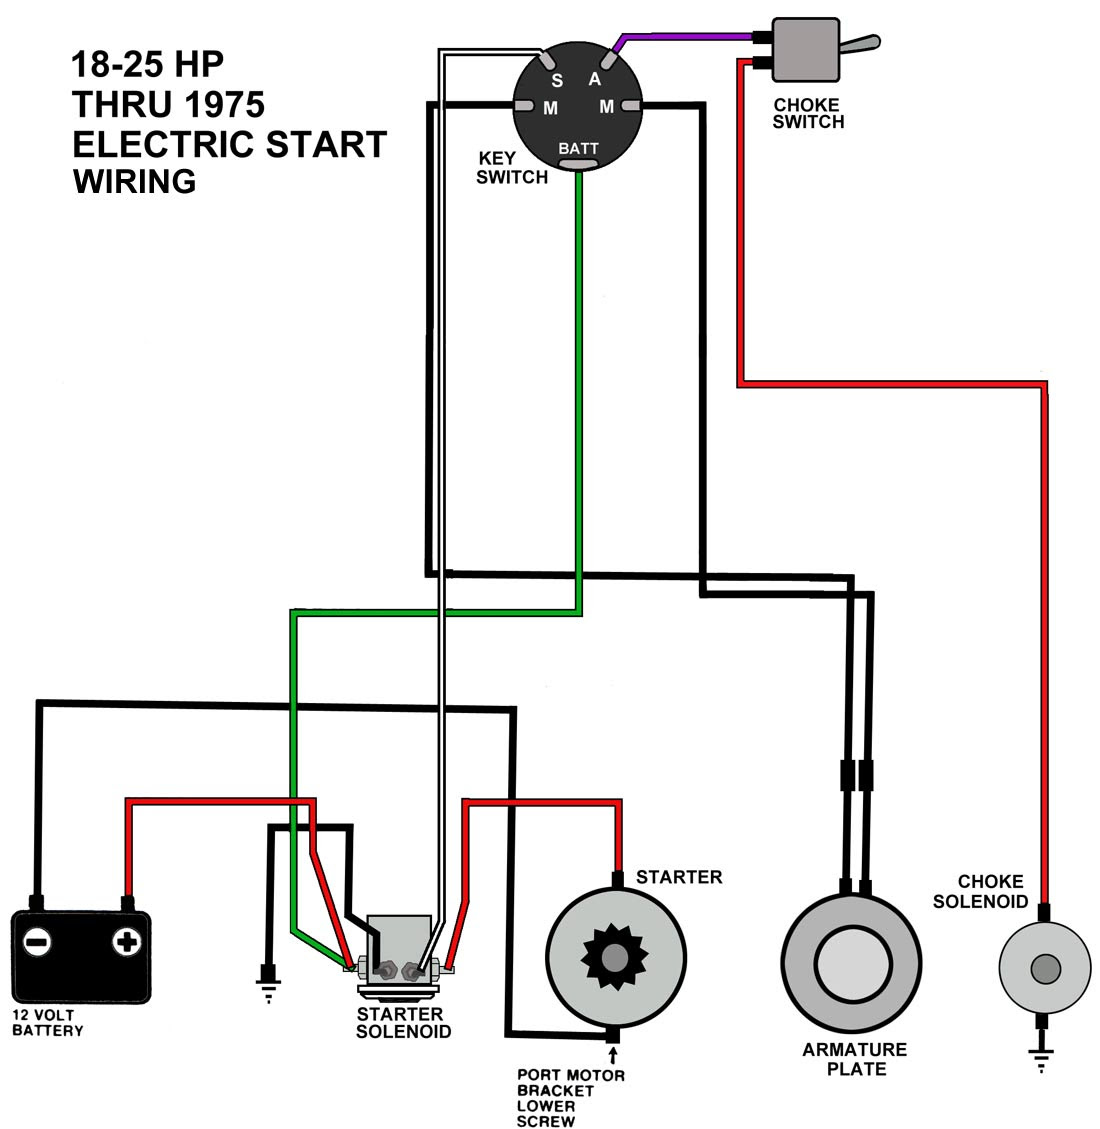 Diagram Gm Start Wiring Diagram Full Version Hd Quality Wiring Diagram Pvdiagramxbowes Ufficiestudi It